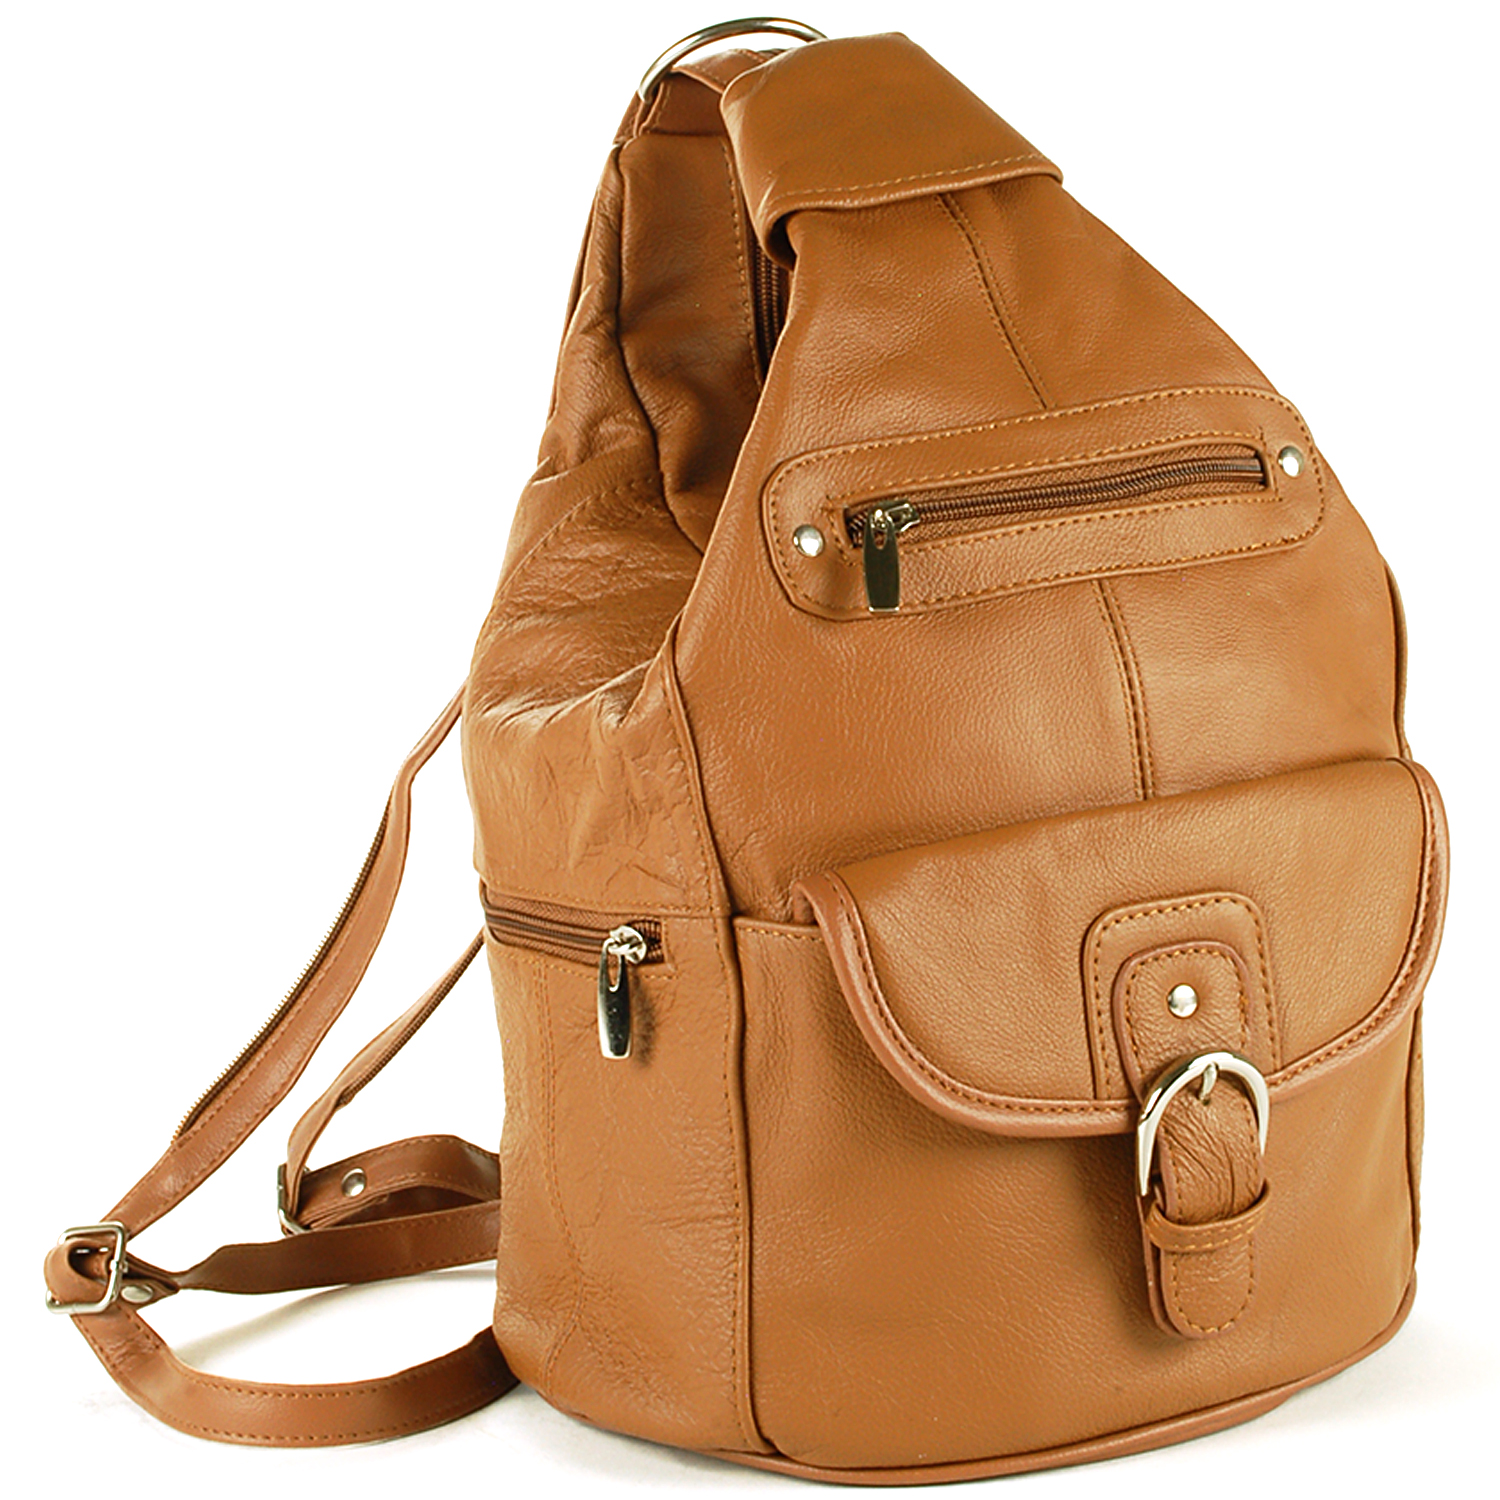 Leather Backpack Purse For Women KzvnCnb4